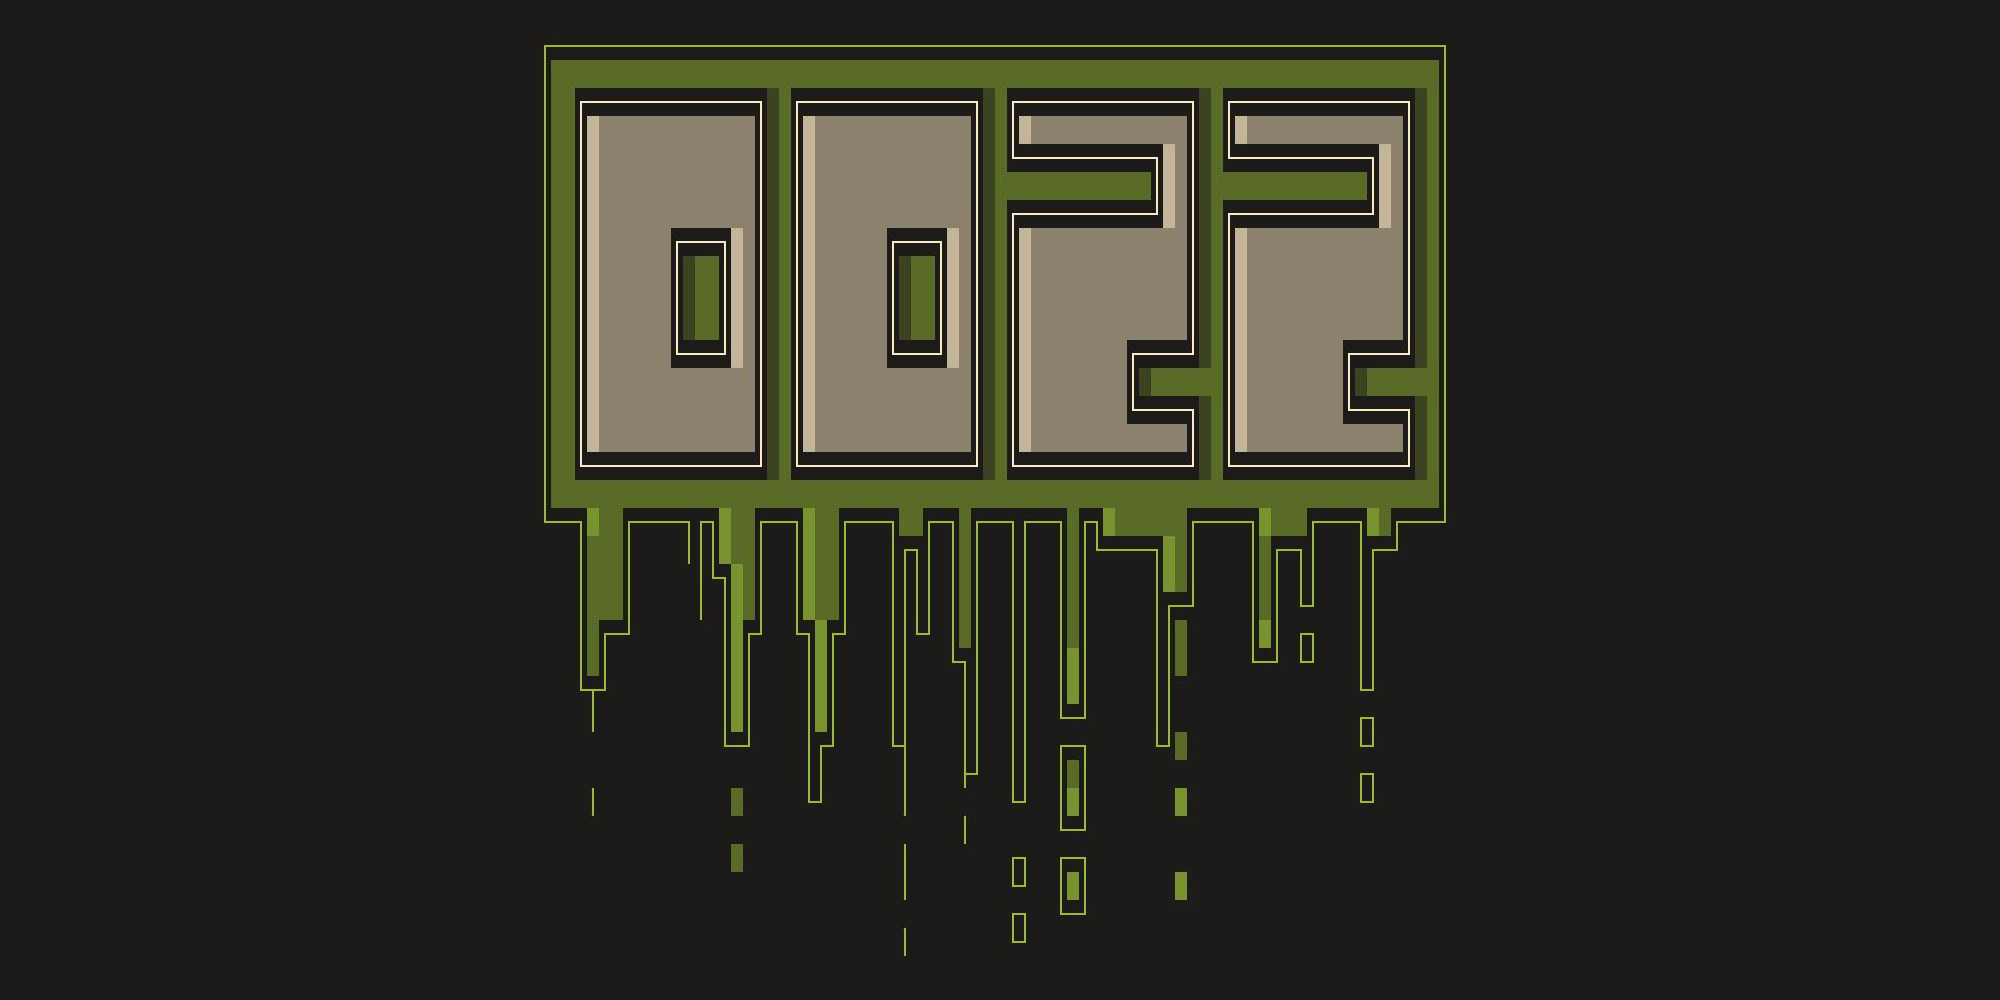 GitHub - roosta/oozz: ANSI art font with added oozz